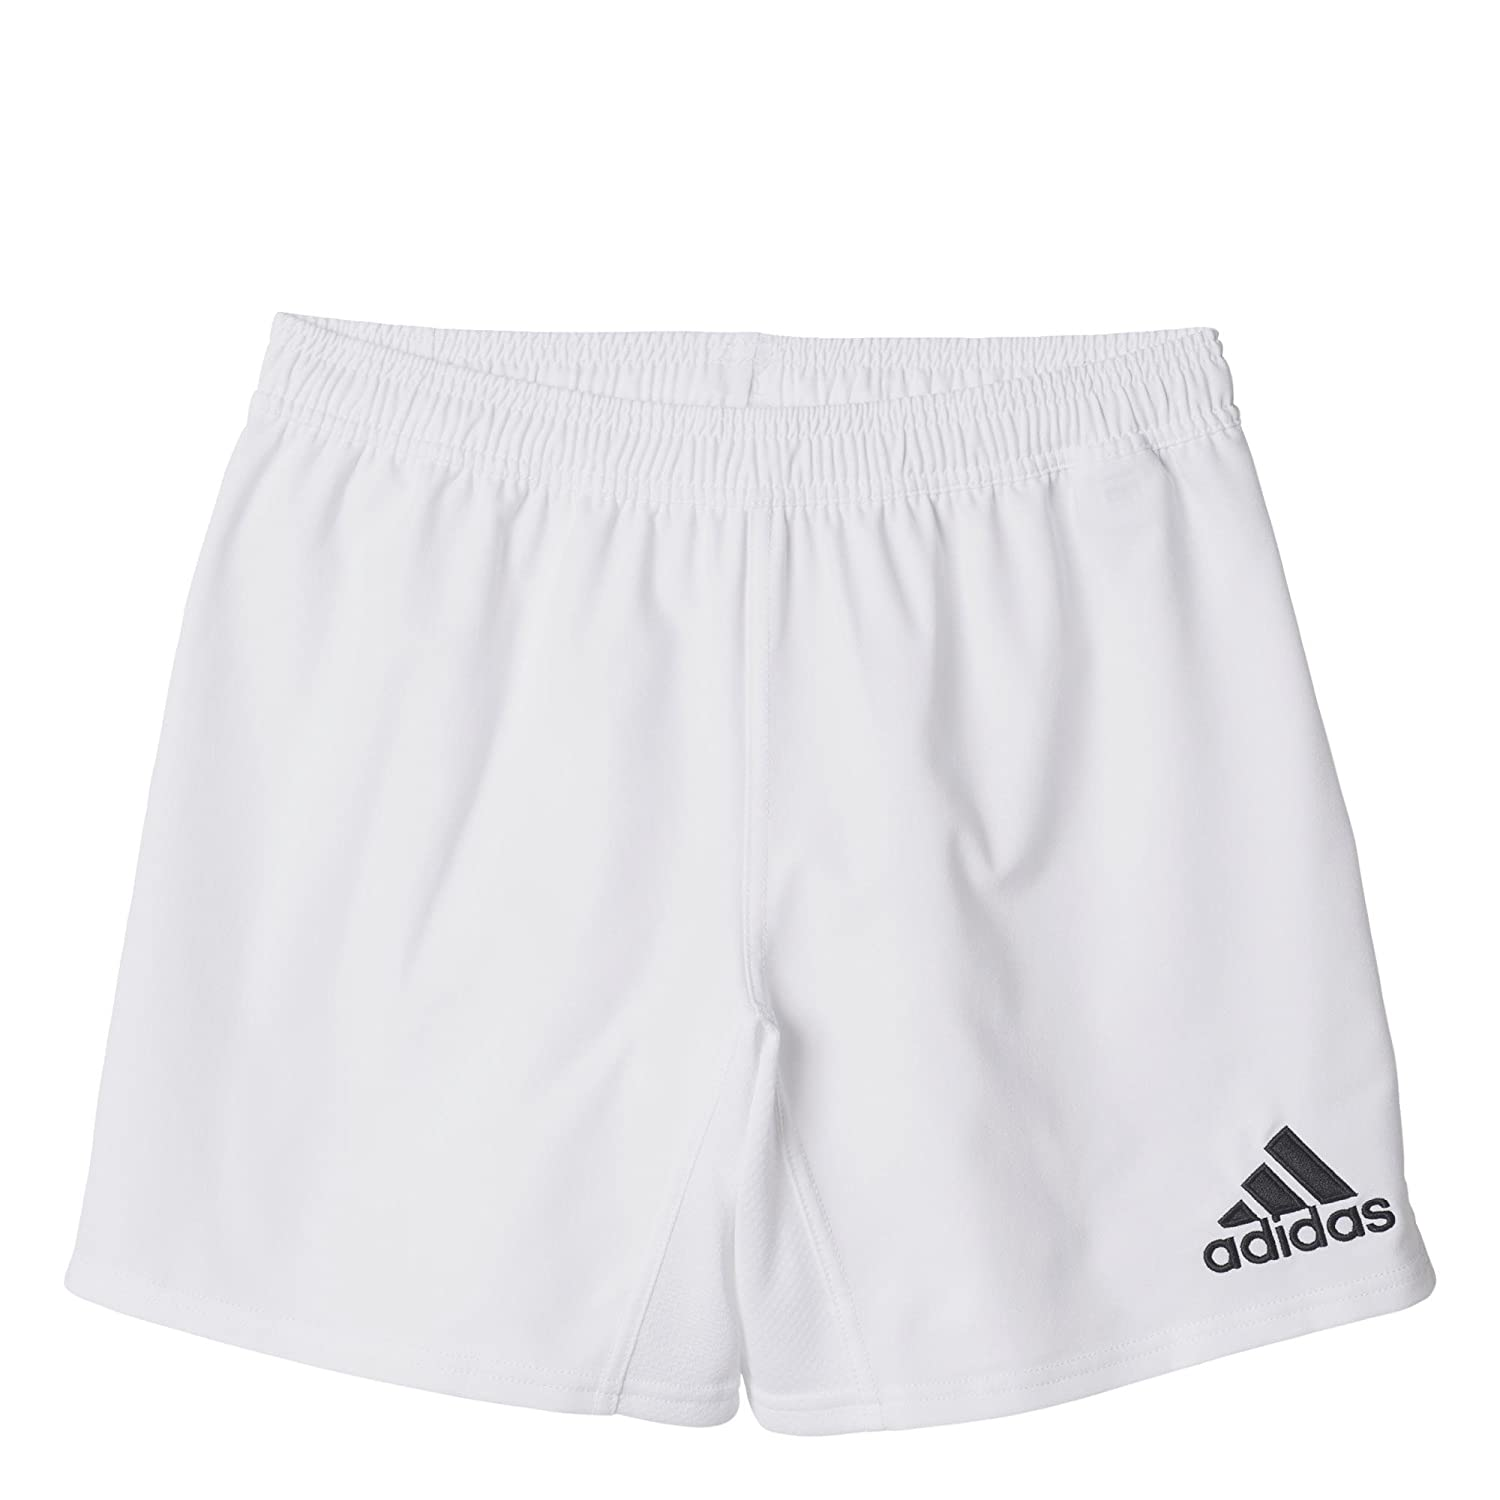 adidas 3s Climacool Men's Rugby Training Shorts A9667